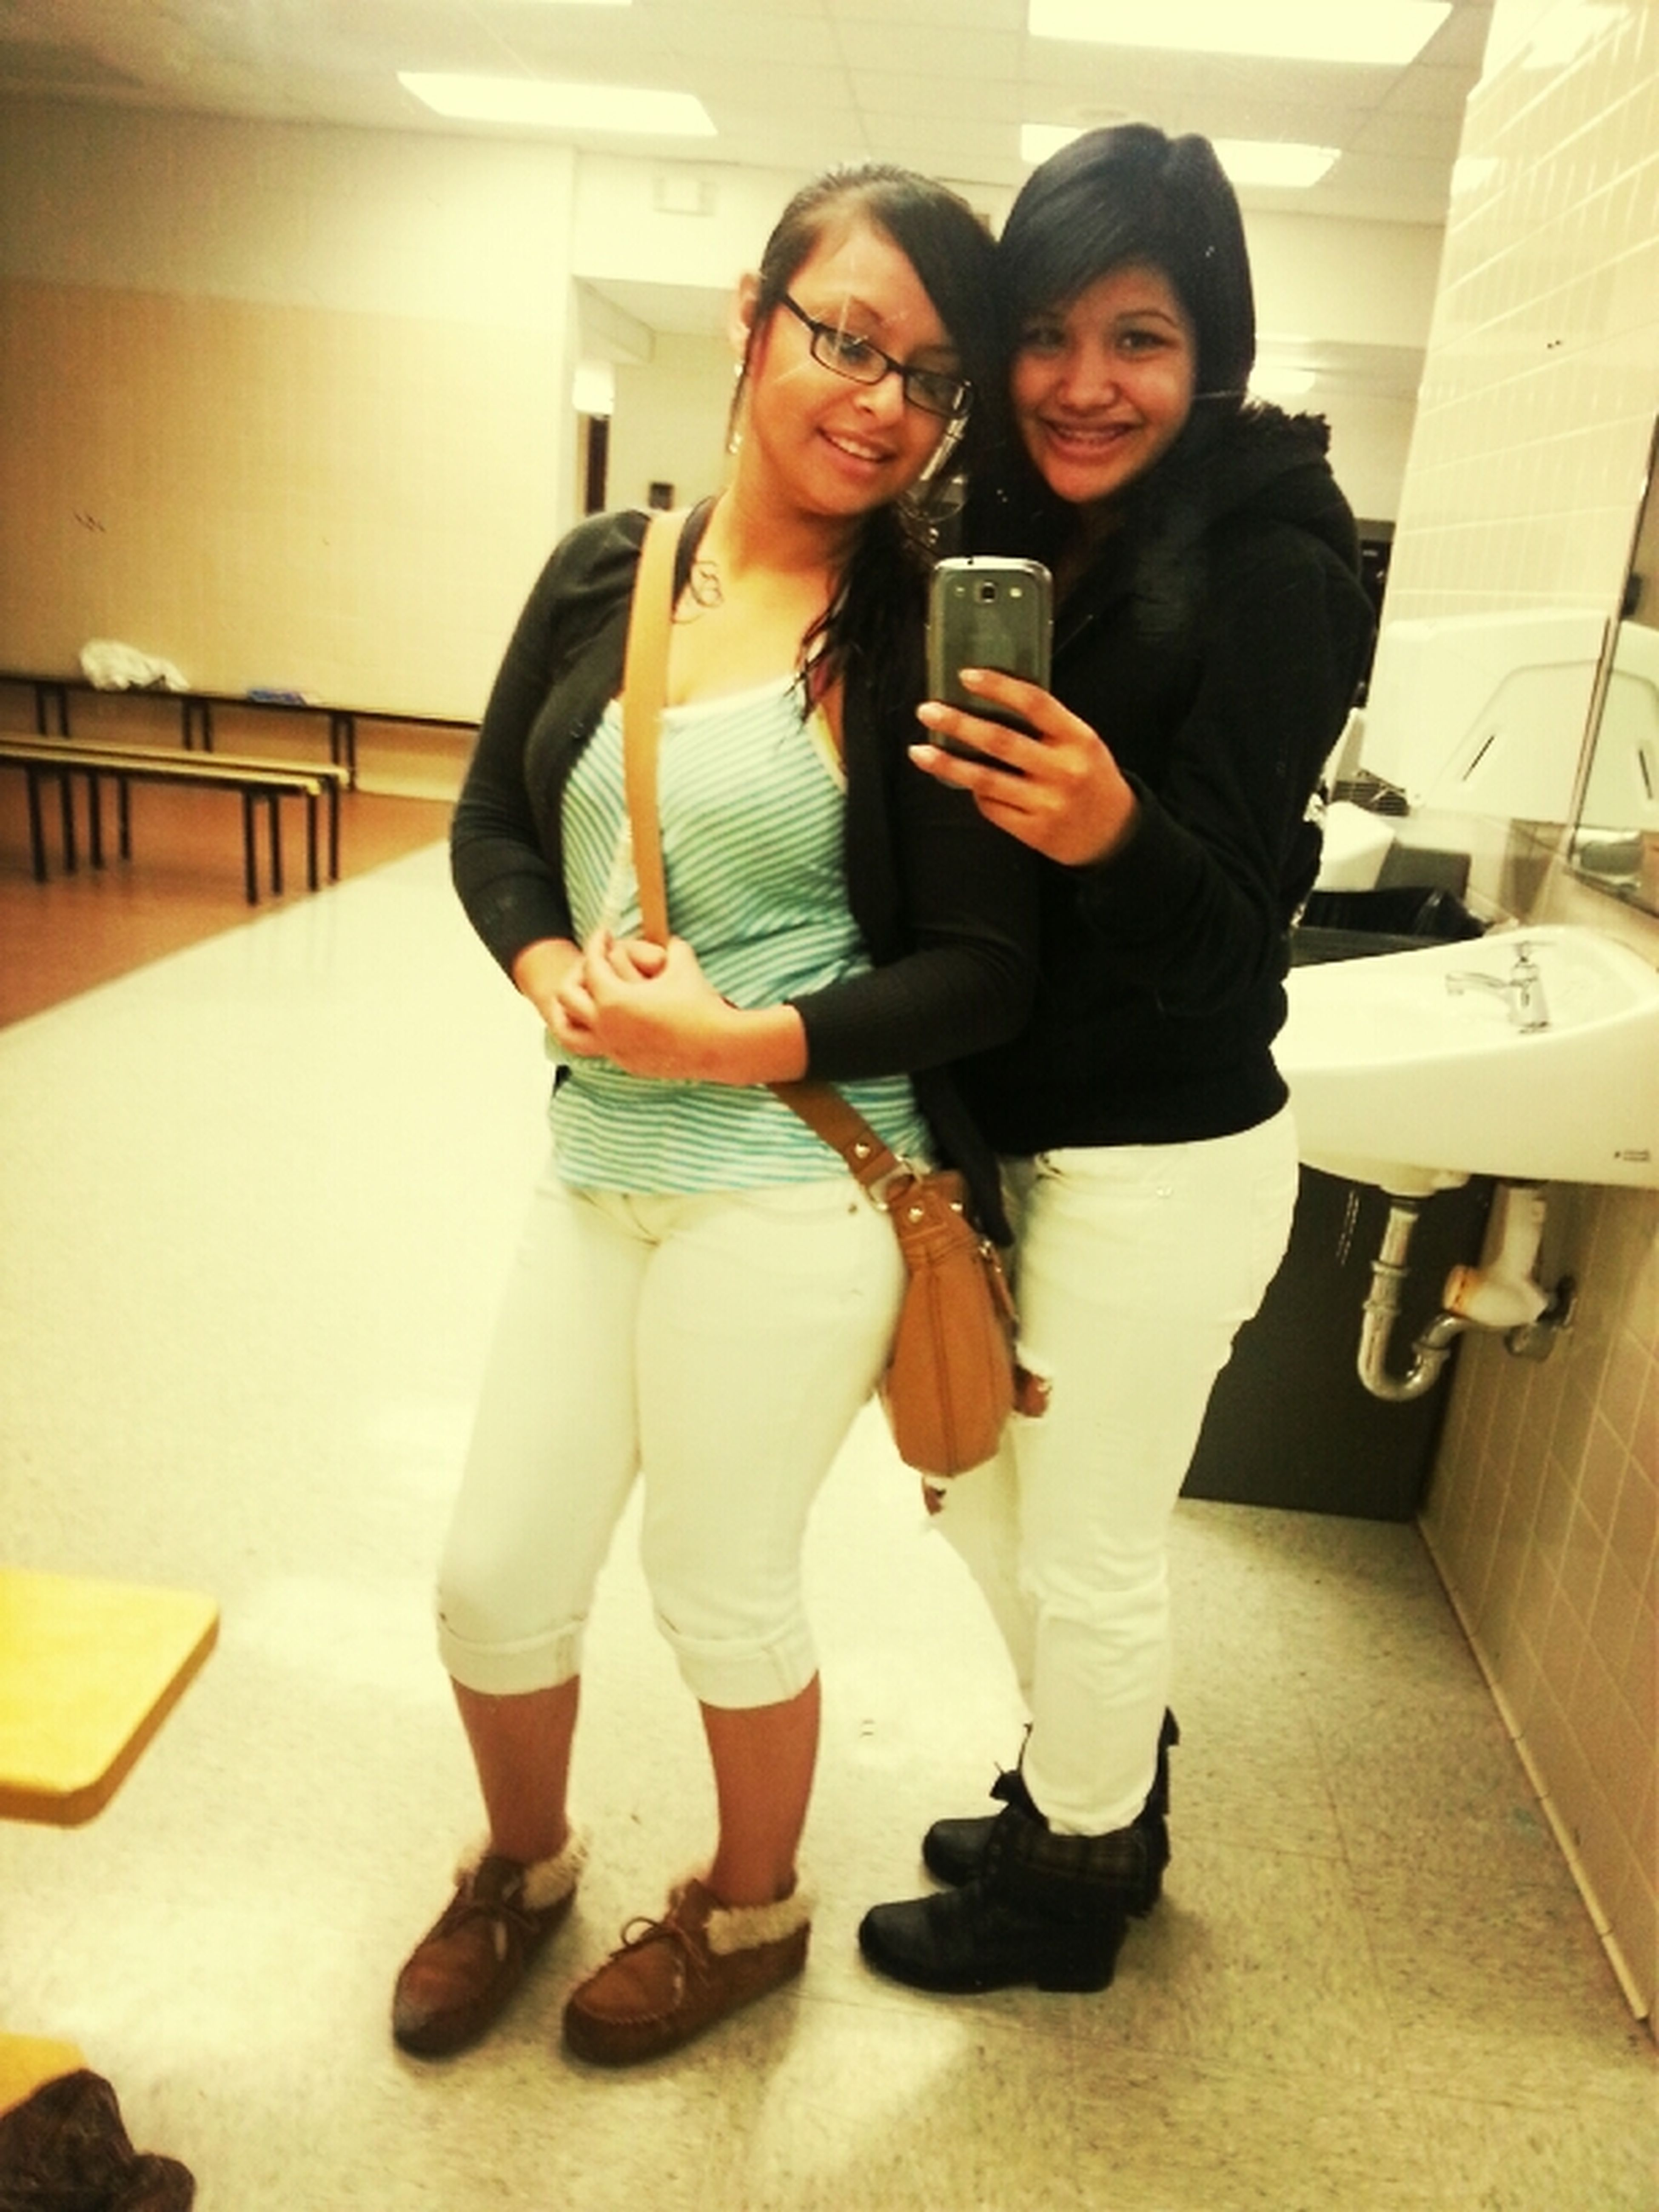 Chilling With Vero At School (: